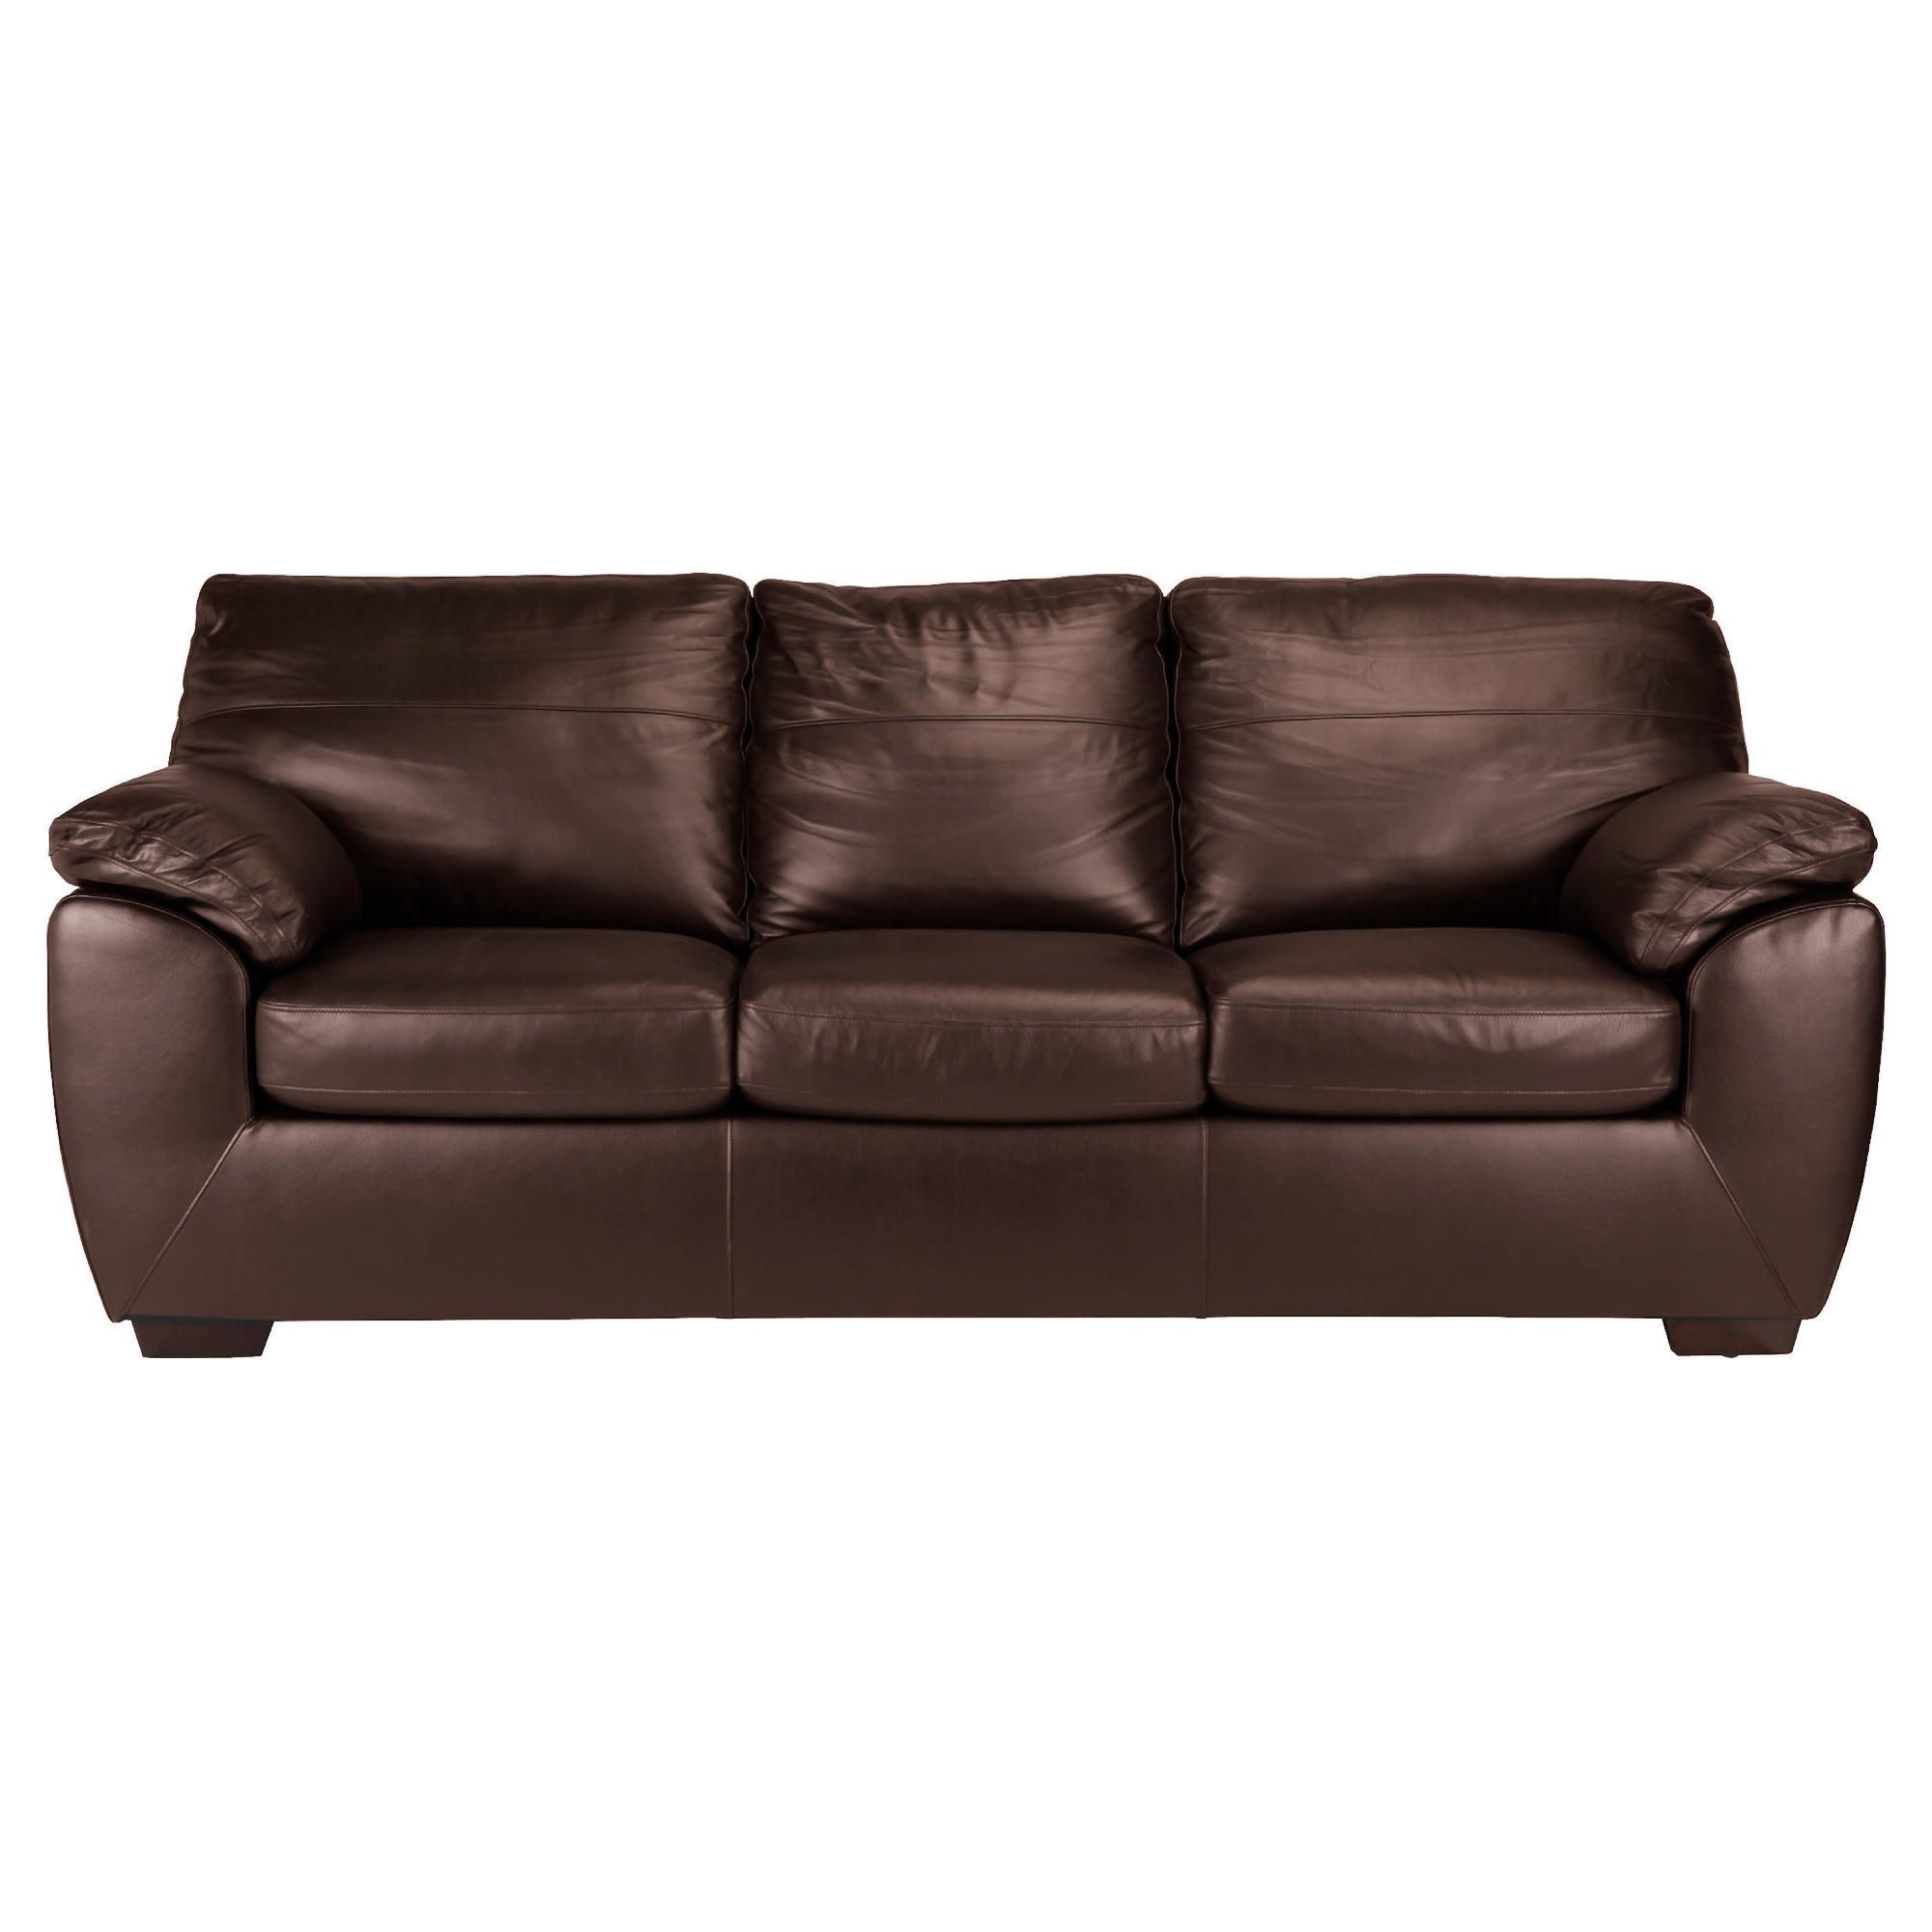 Alberta Sofabed, Chocolate at Tesco Direct